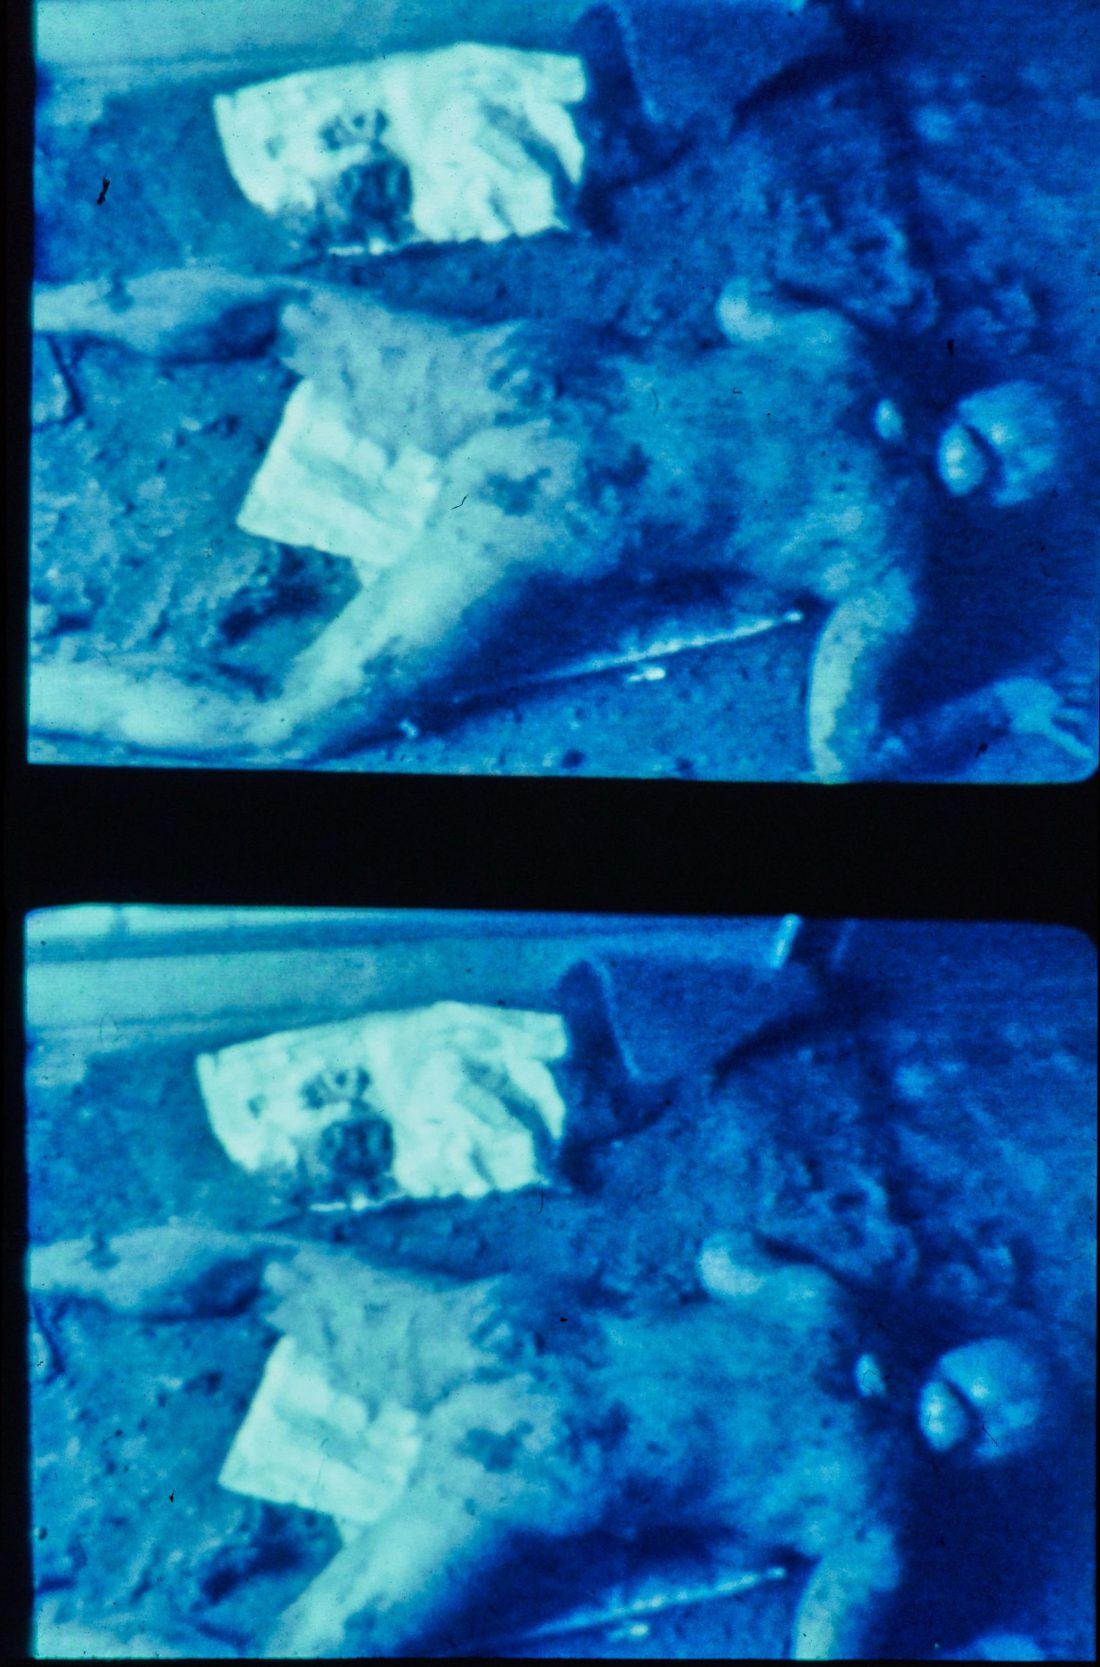 <p>Film still from Ann-Sofi Siden's film<em> QM, I Think I call her QM</em>, 1997.</p>